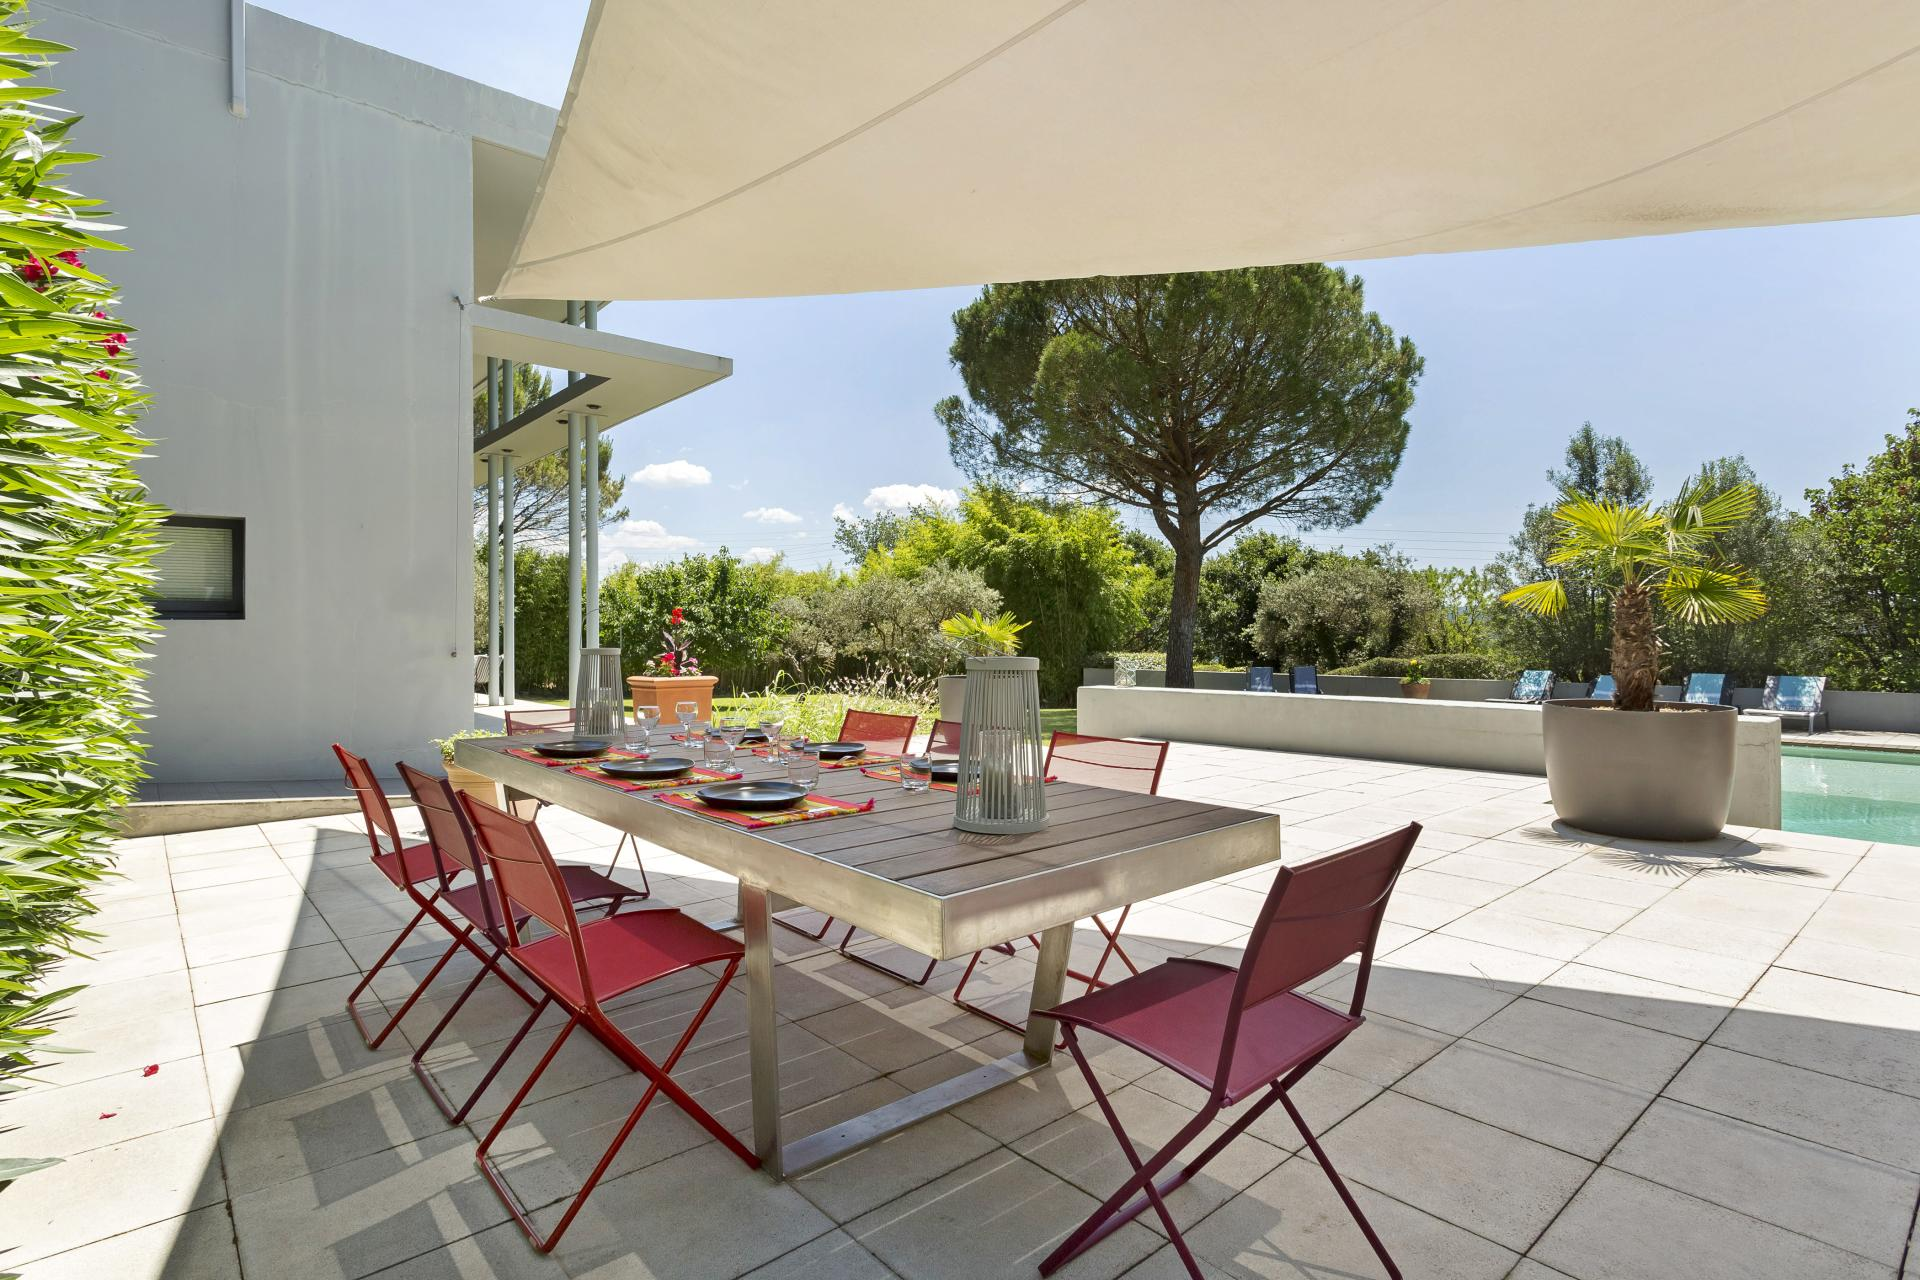 Outdoor Seating Area, Le Clocher, Cadenet, Luberon National Park, Provence.